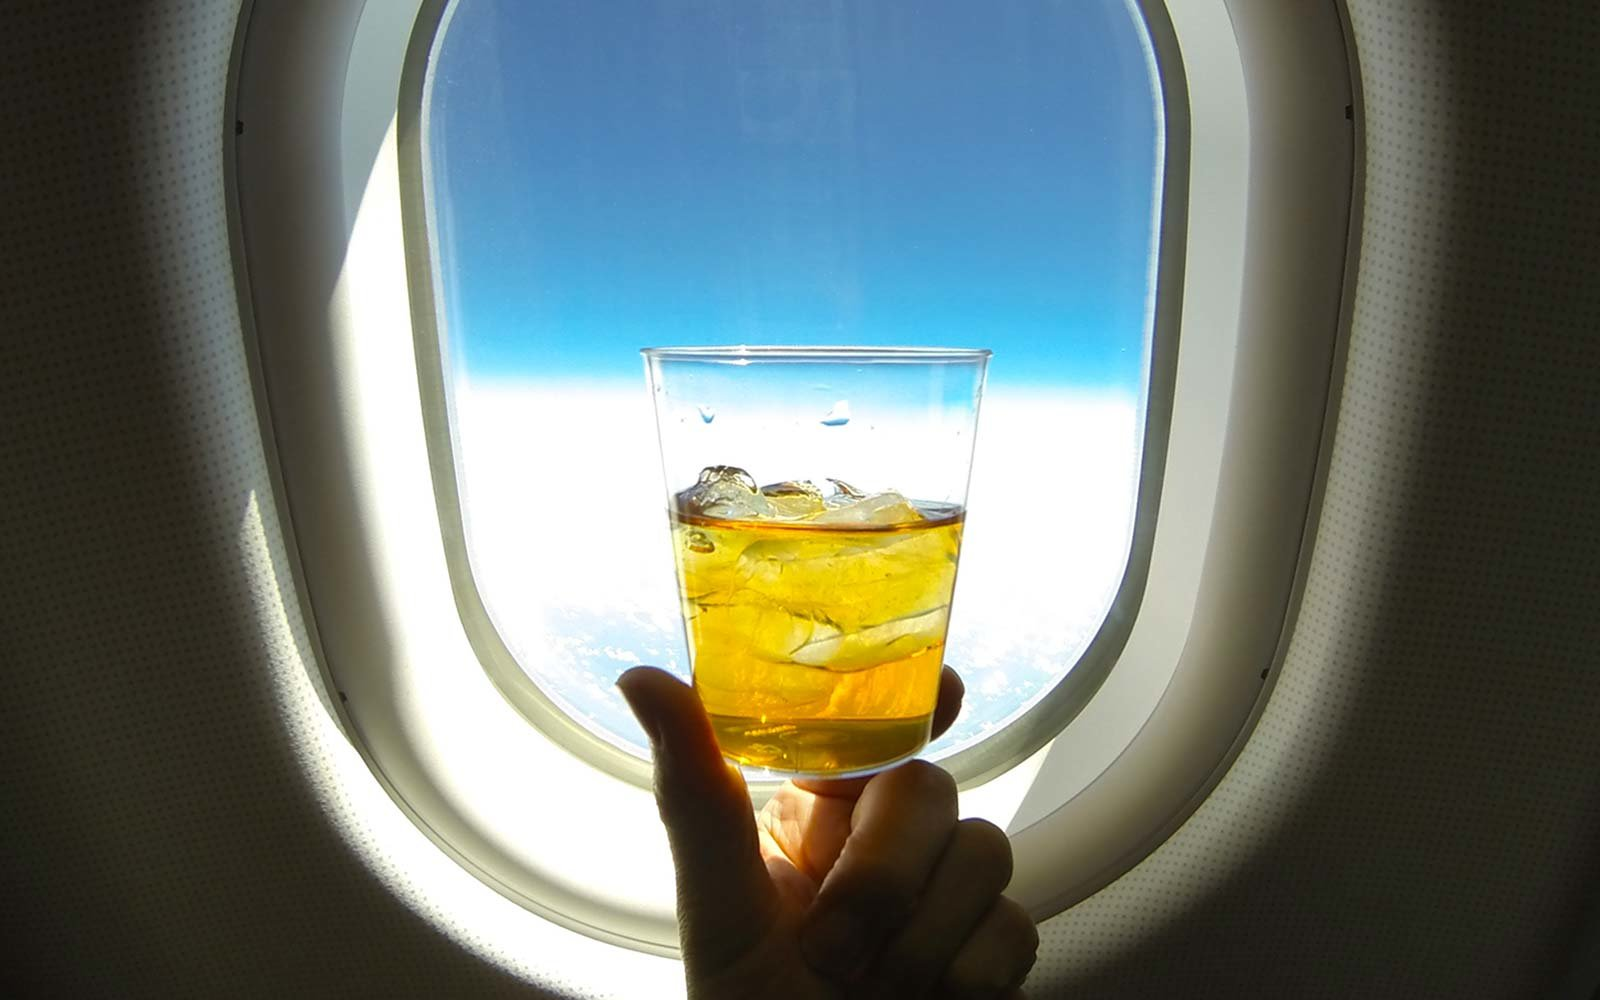 Alcohol Liquor Whiskey Airplane cabin window drunk passenger